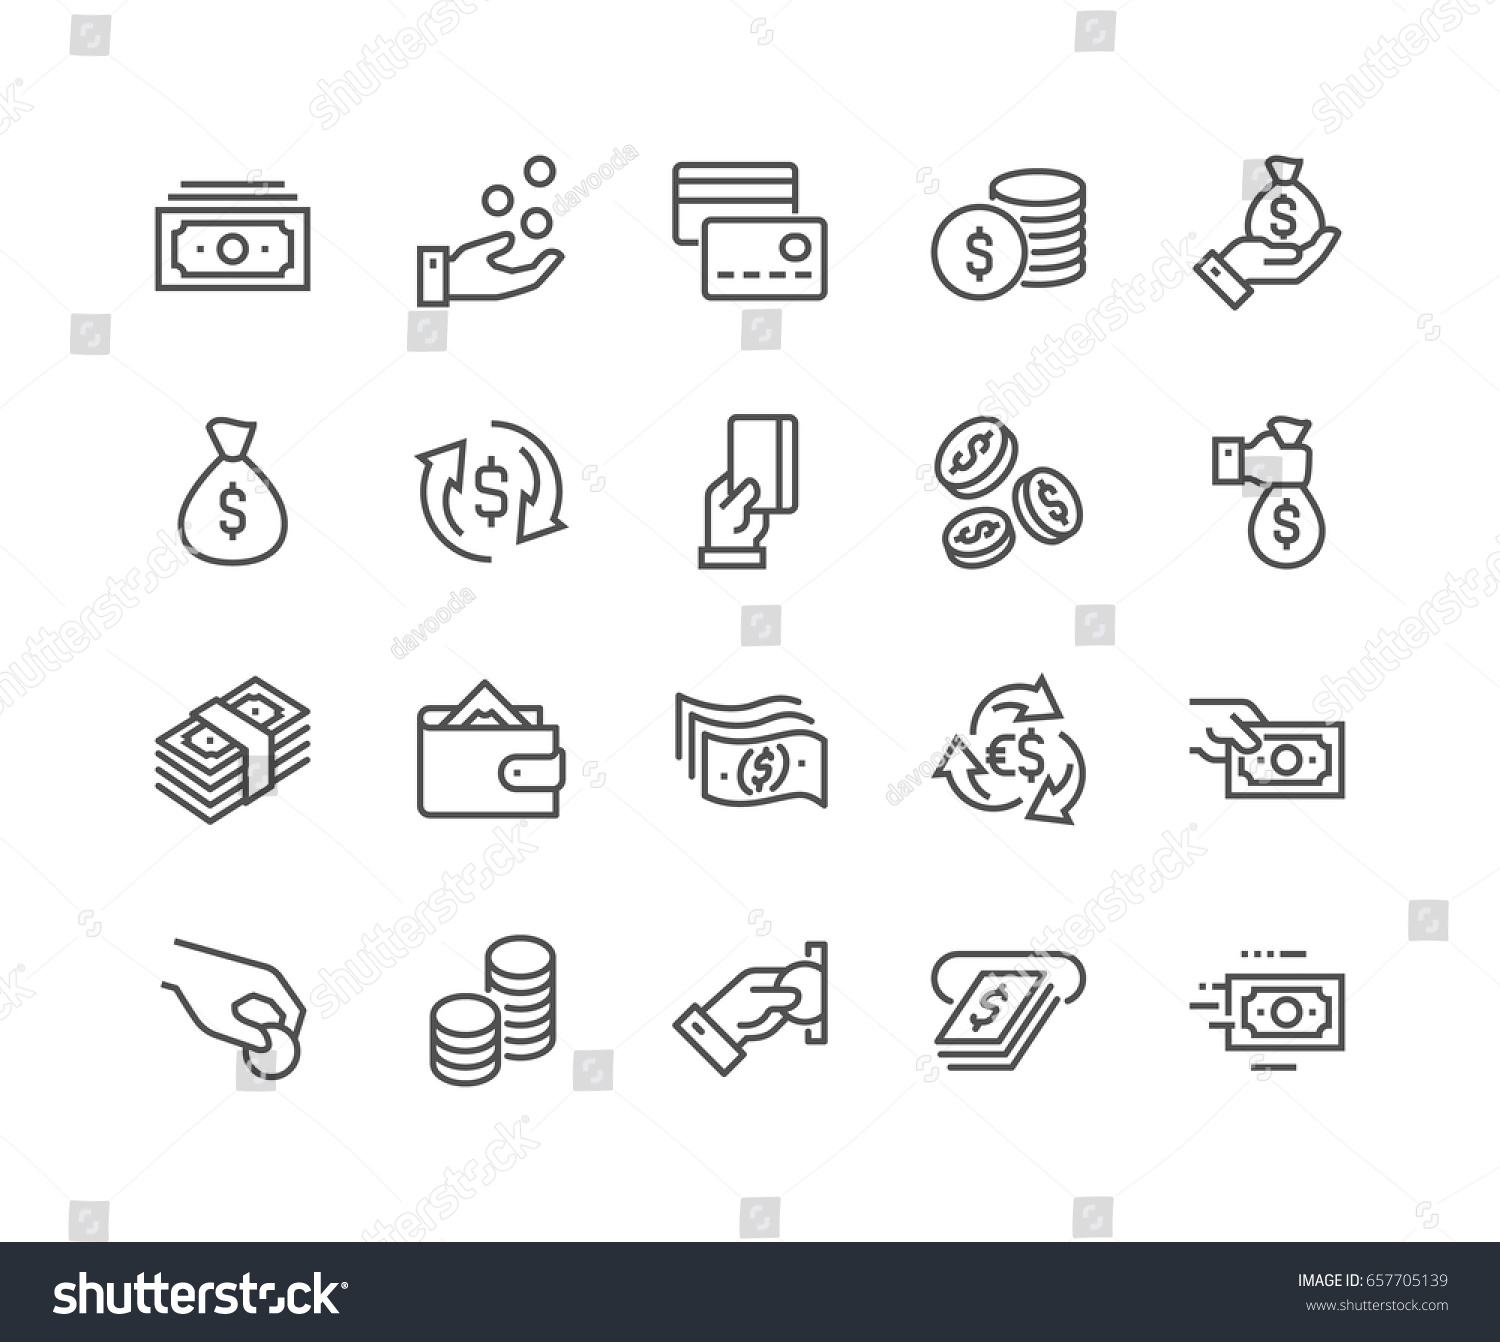 Simple Set of Money Related Vector Line Icons.  Contains such Icons as Wallet, ATM, Bundle of Money, Hand with a Coin and more. Editable Stroke. 48x48 Pixel Perfect. #657705139